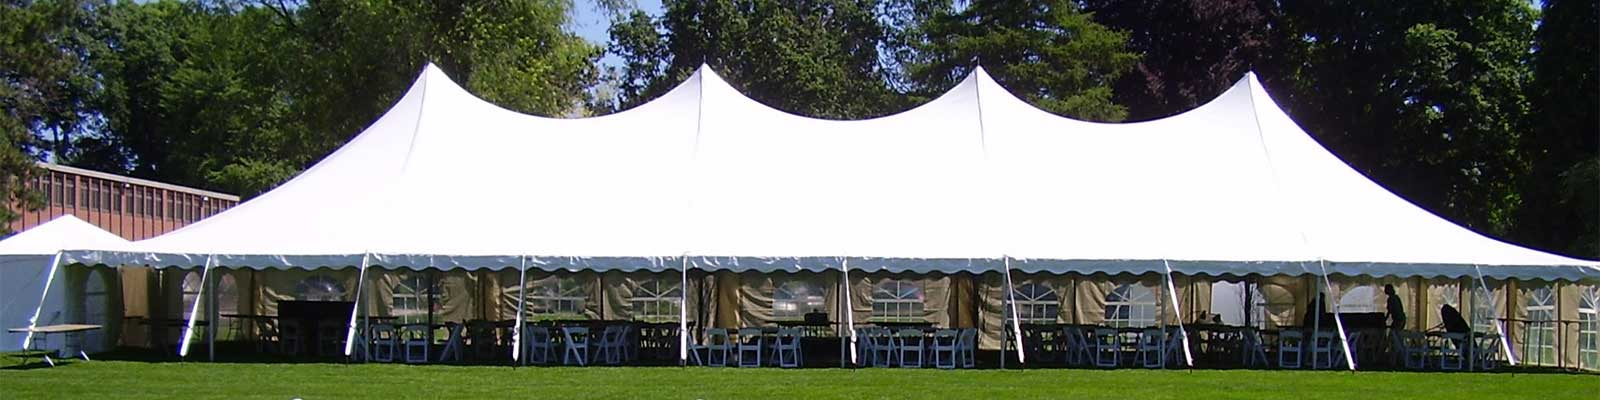 Party Rentals in Kalamazoo & Battle Creek MI